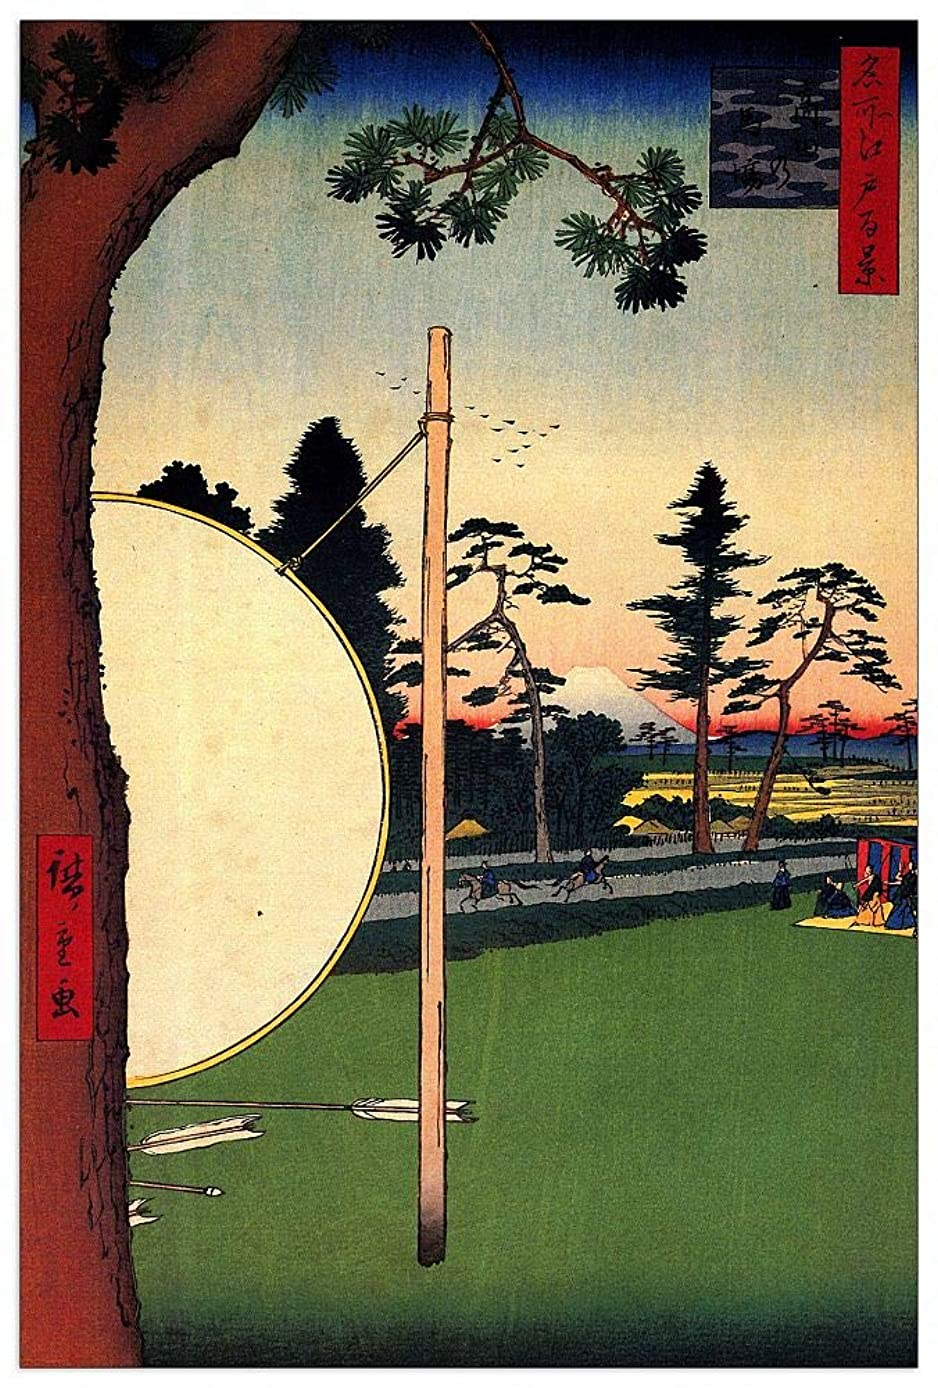 ArtPlaza TW93020 Hiroshige Utagawa-Taketa Riding Grounds Decorative Panel, 27.5x39.5 Inch, Multicolored